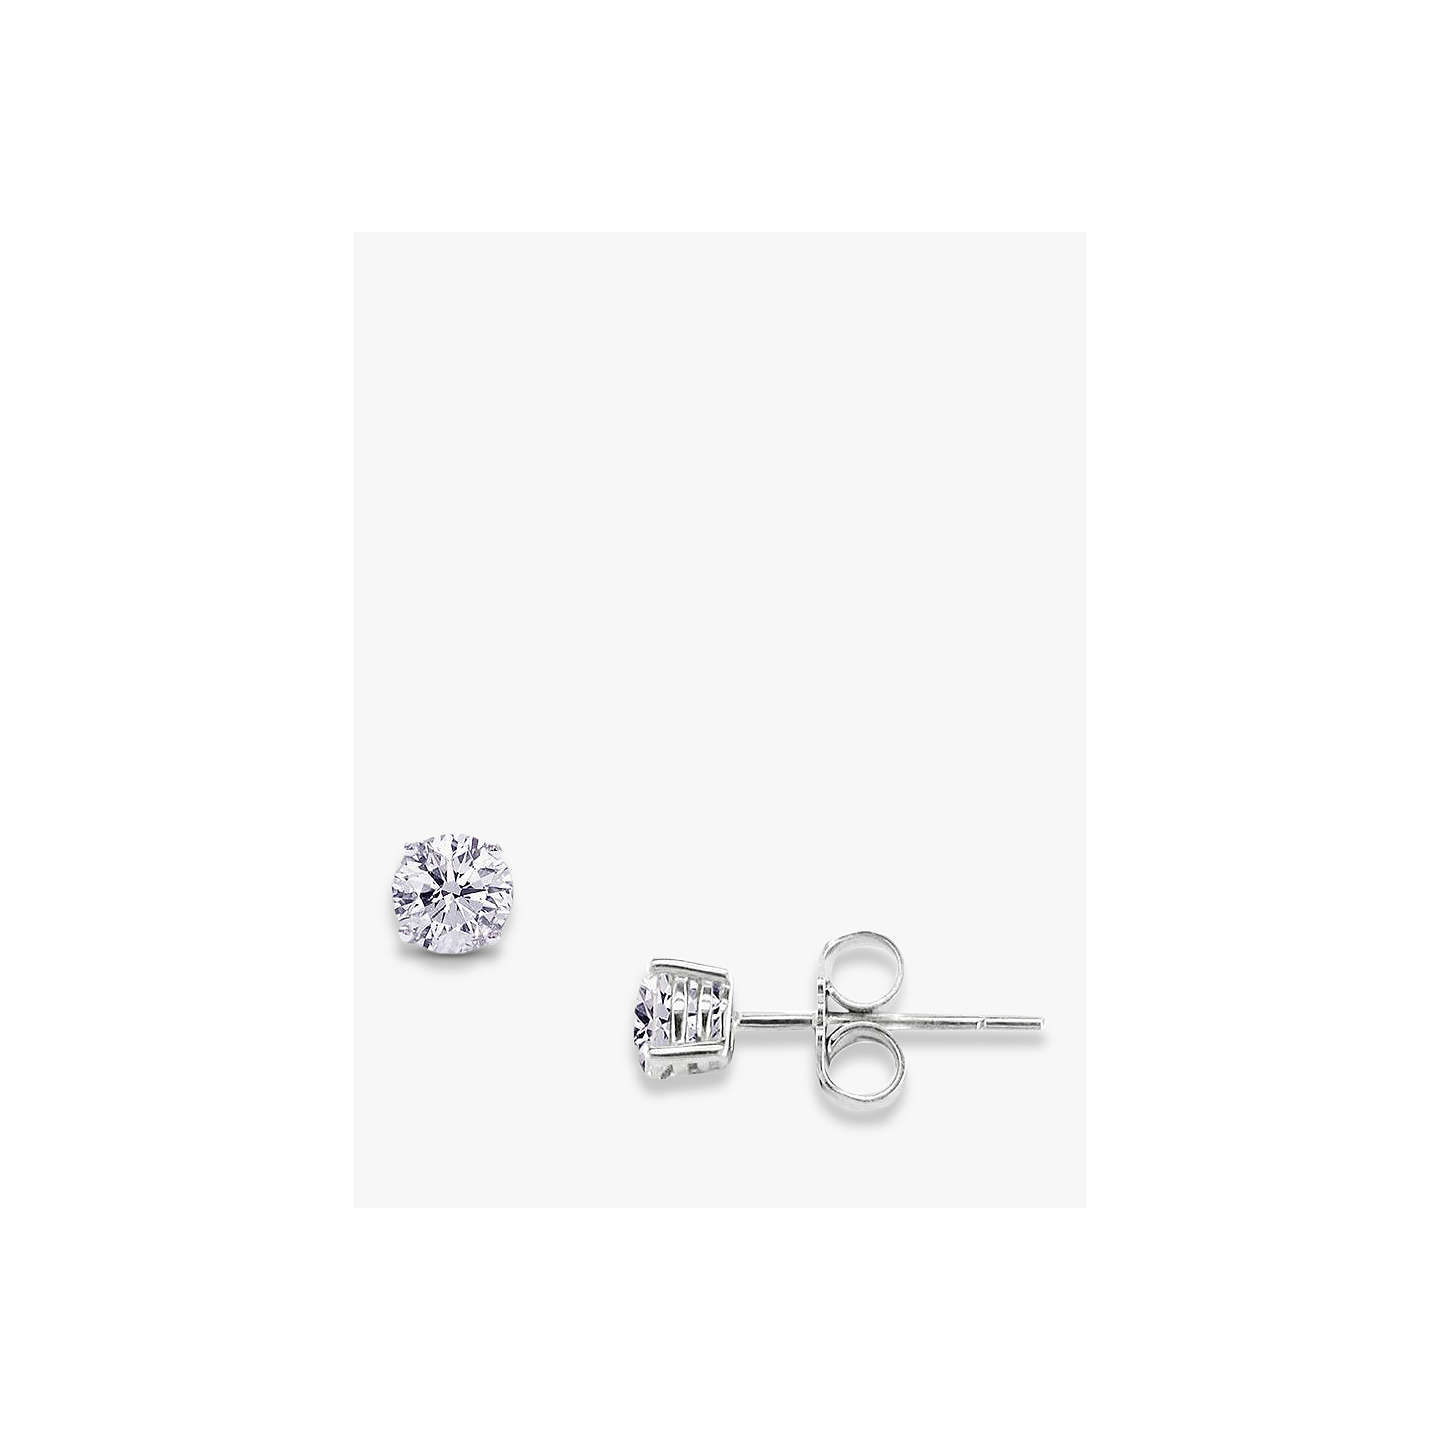 tw p earrings stud betteridge halo square ct cut diamond emerald asscher